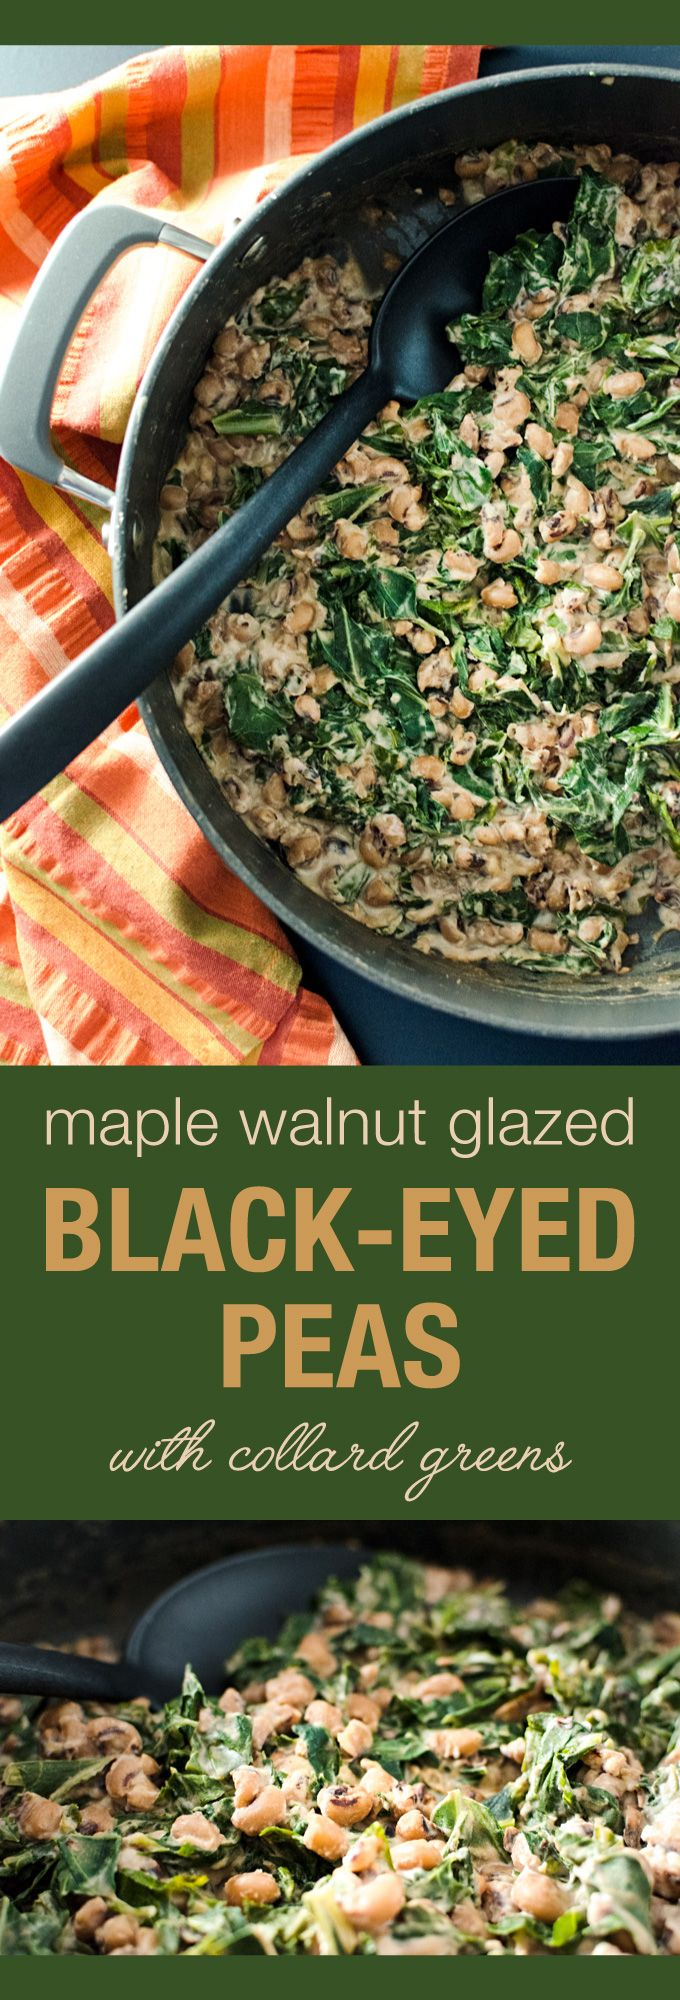 Maple Walnut Glazed Black-Eyed Peas with Collard Greens - inspired by flavors…